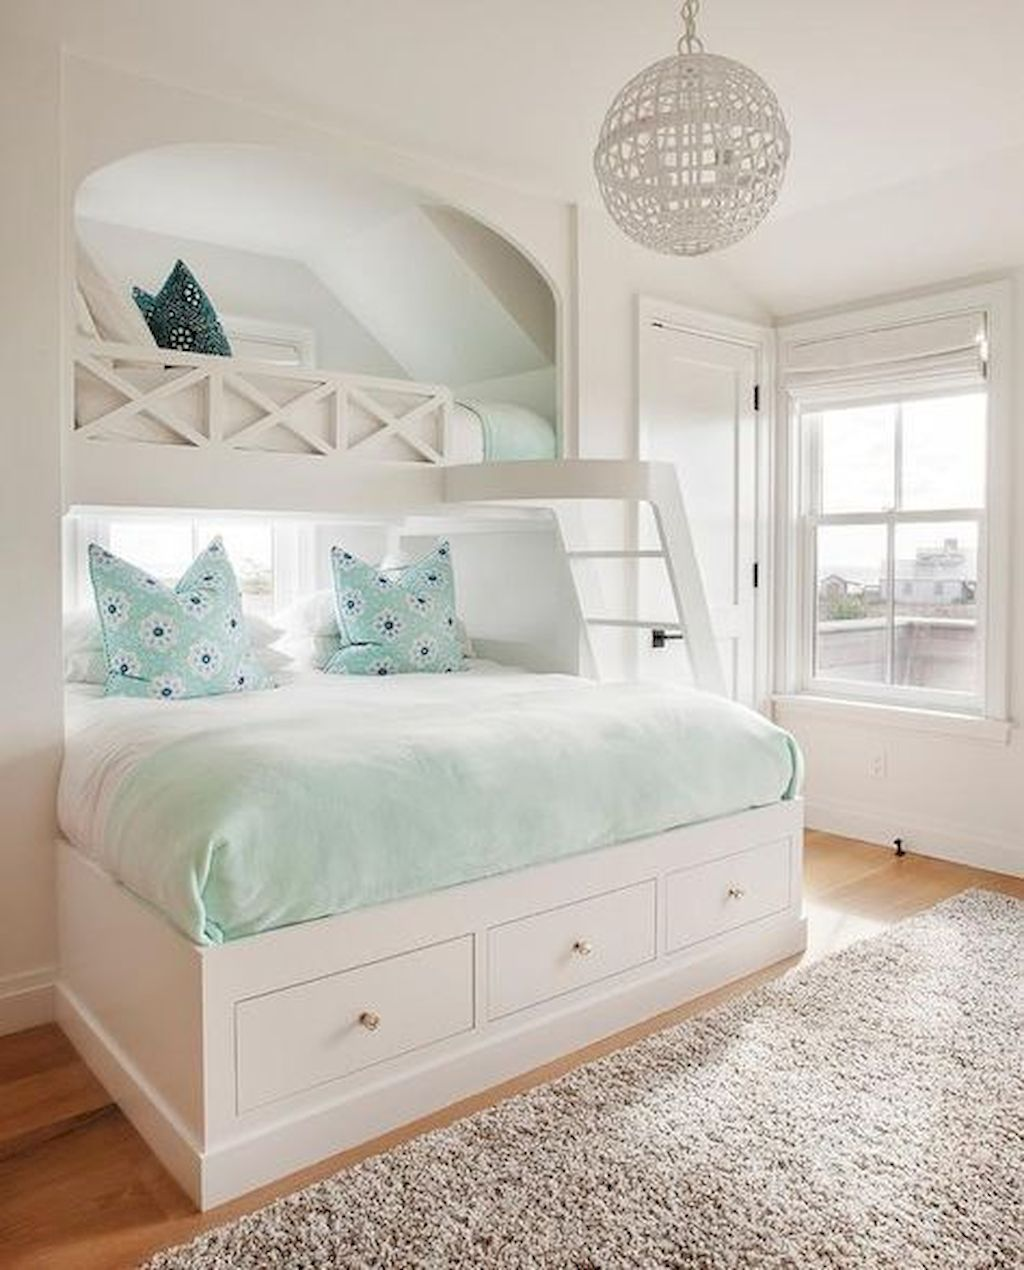 Smart Ideas For Amazing Bedroom Storage | Small room bedroom ...